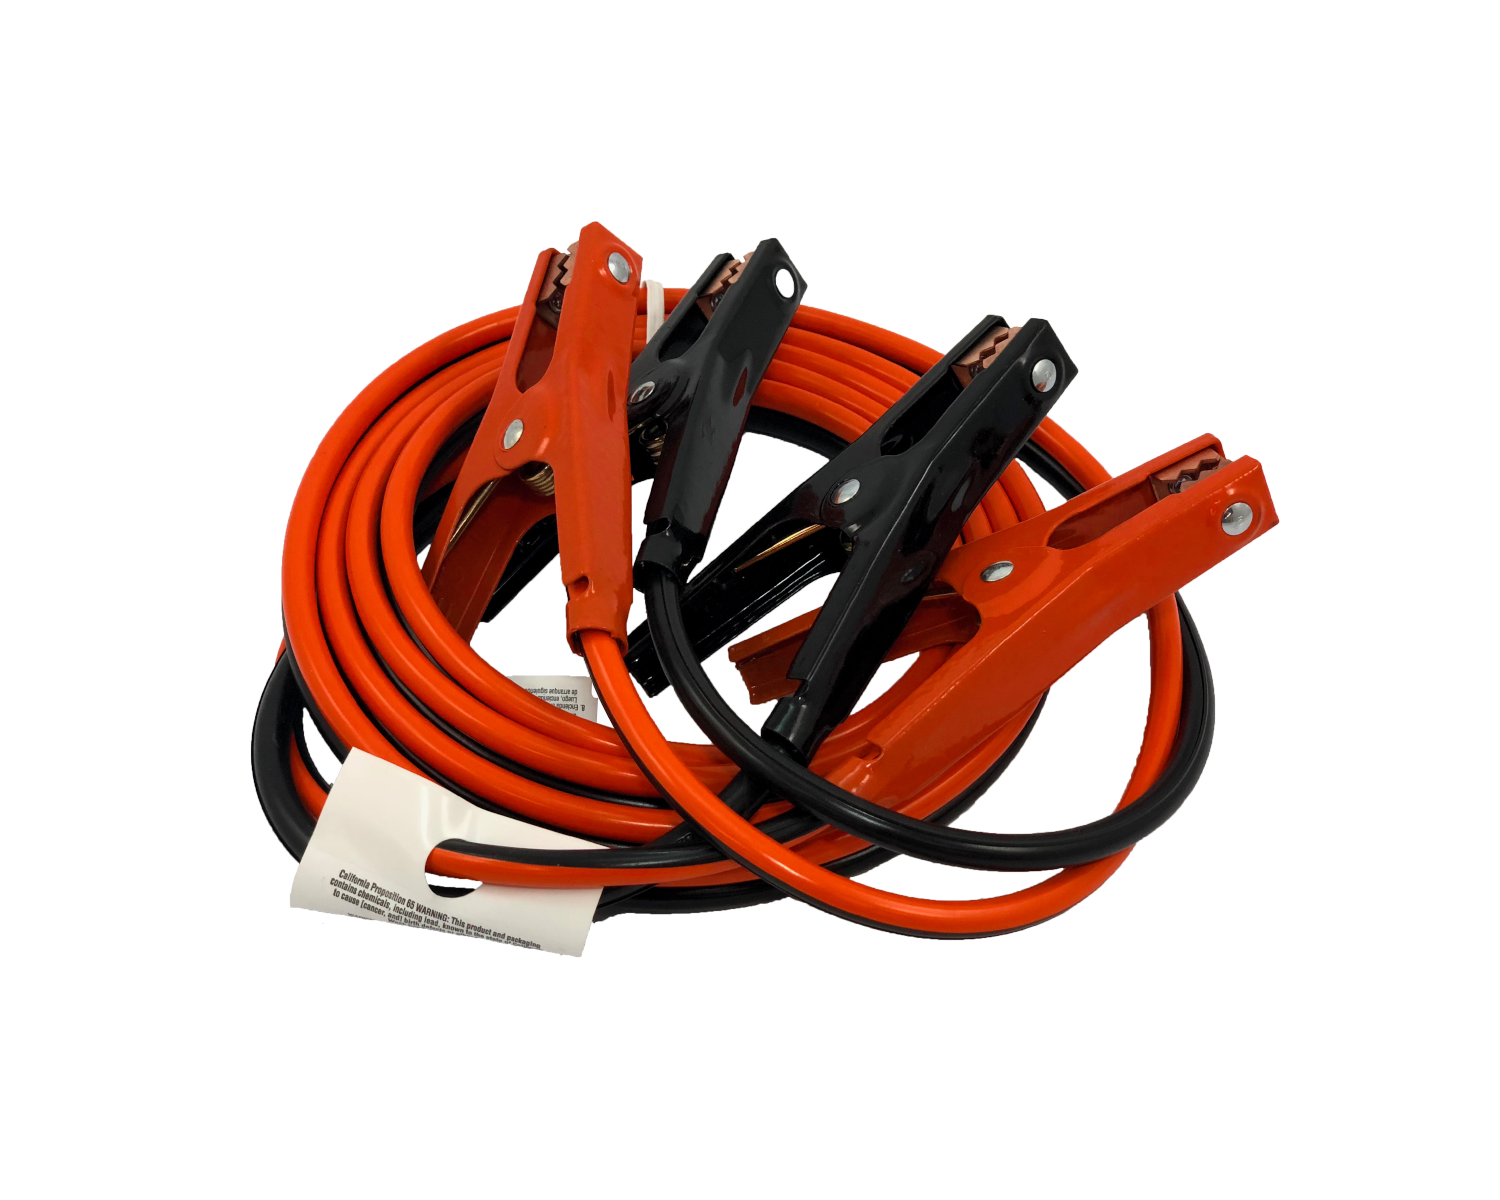 6 Gauge - 12' 100% CopperJumper Cables